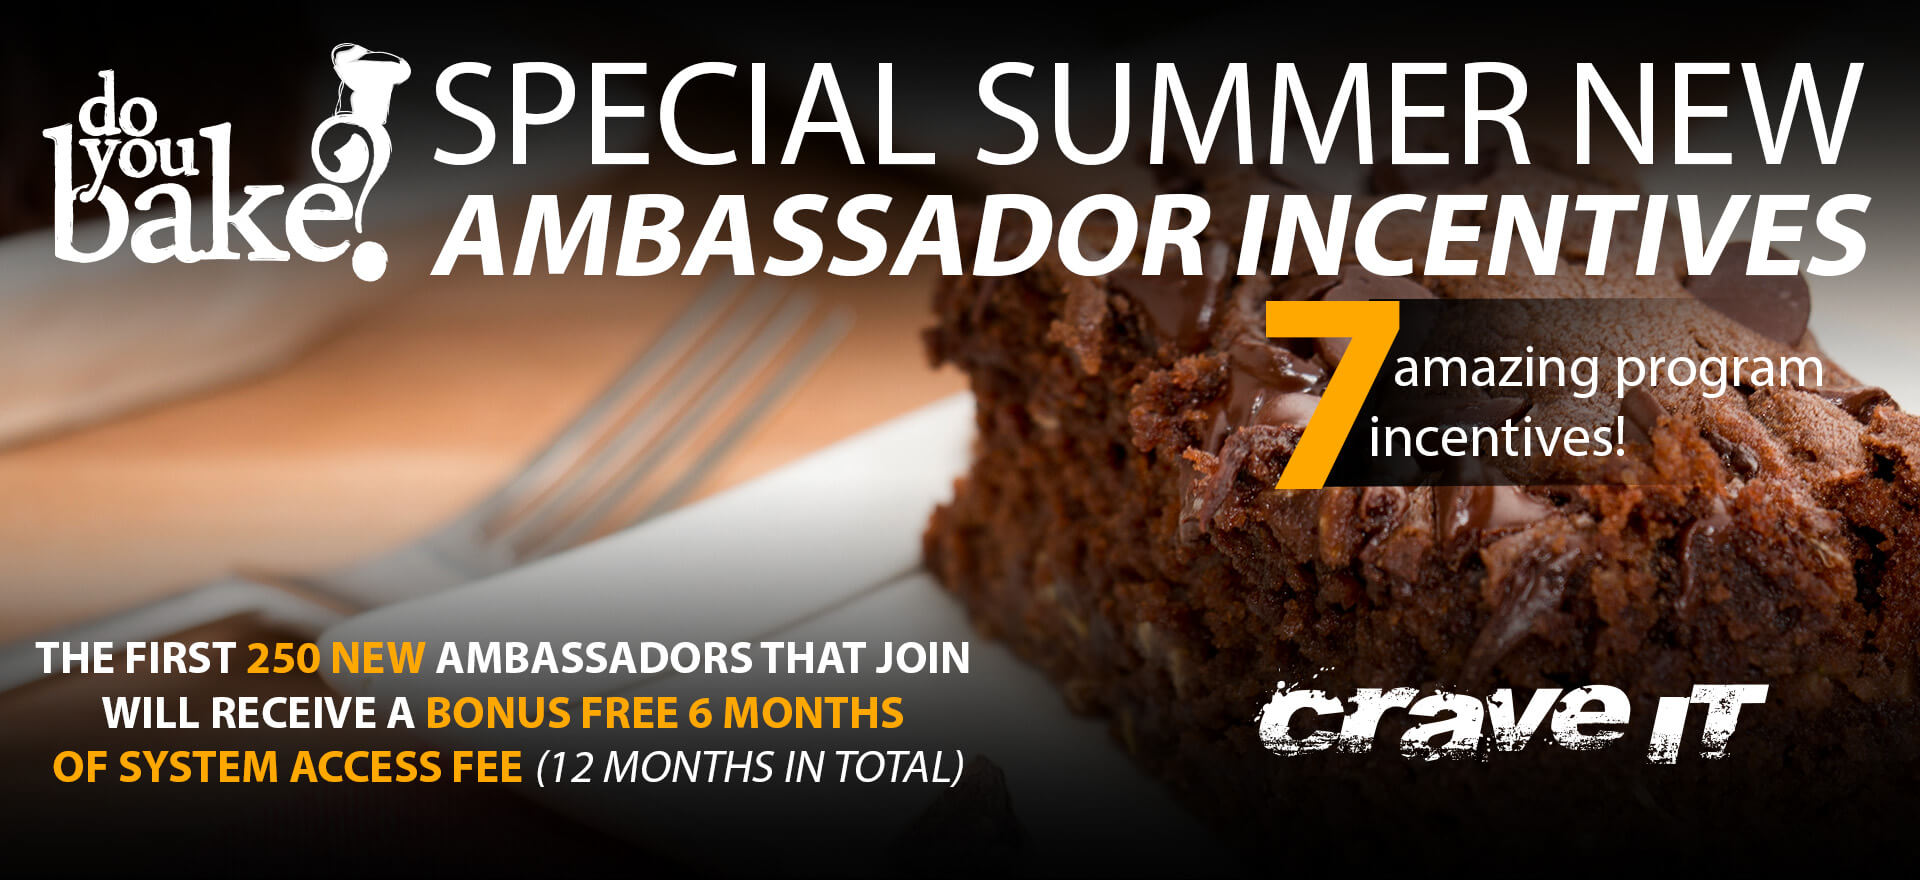 SPECIAL-SUMMER-NEW-AMBASSADOR-INCENTIVES-Banner